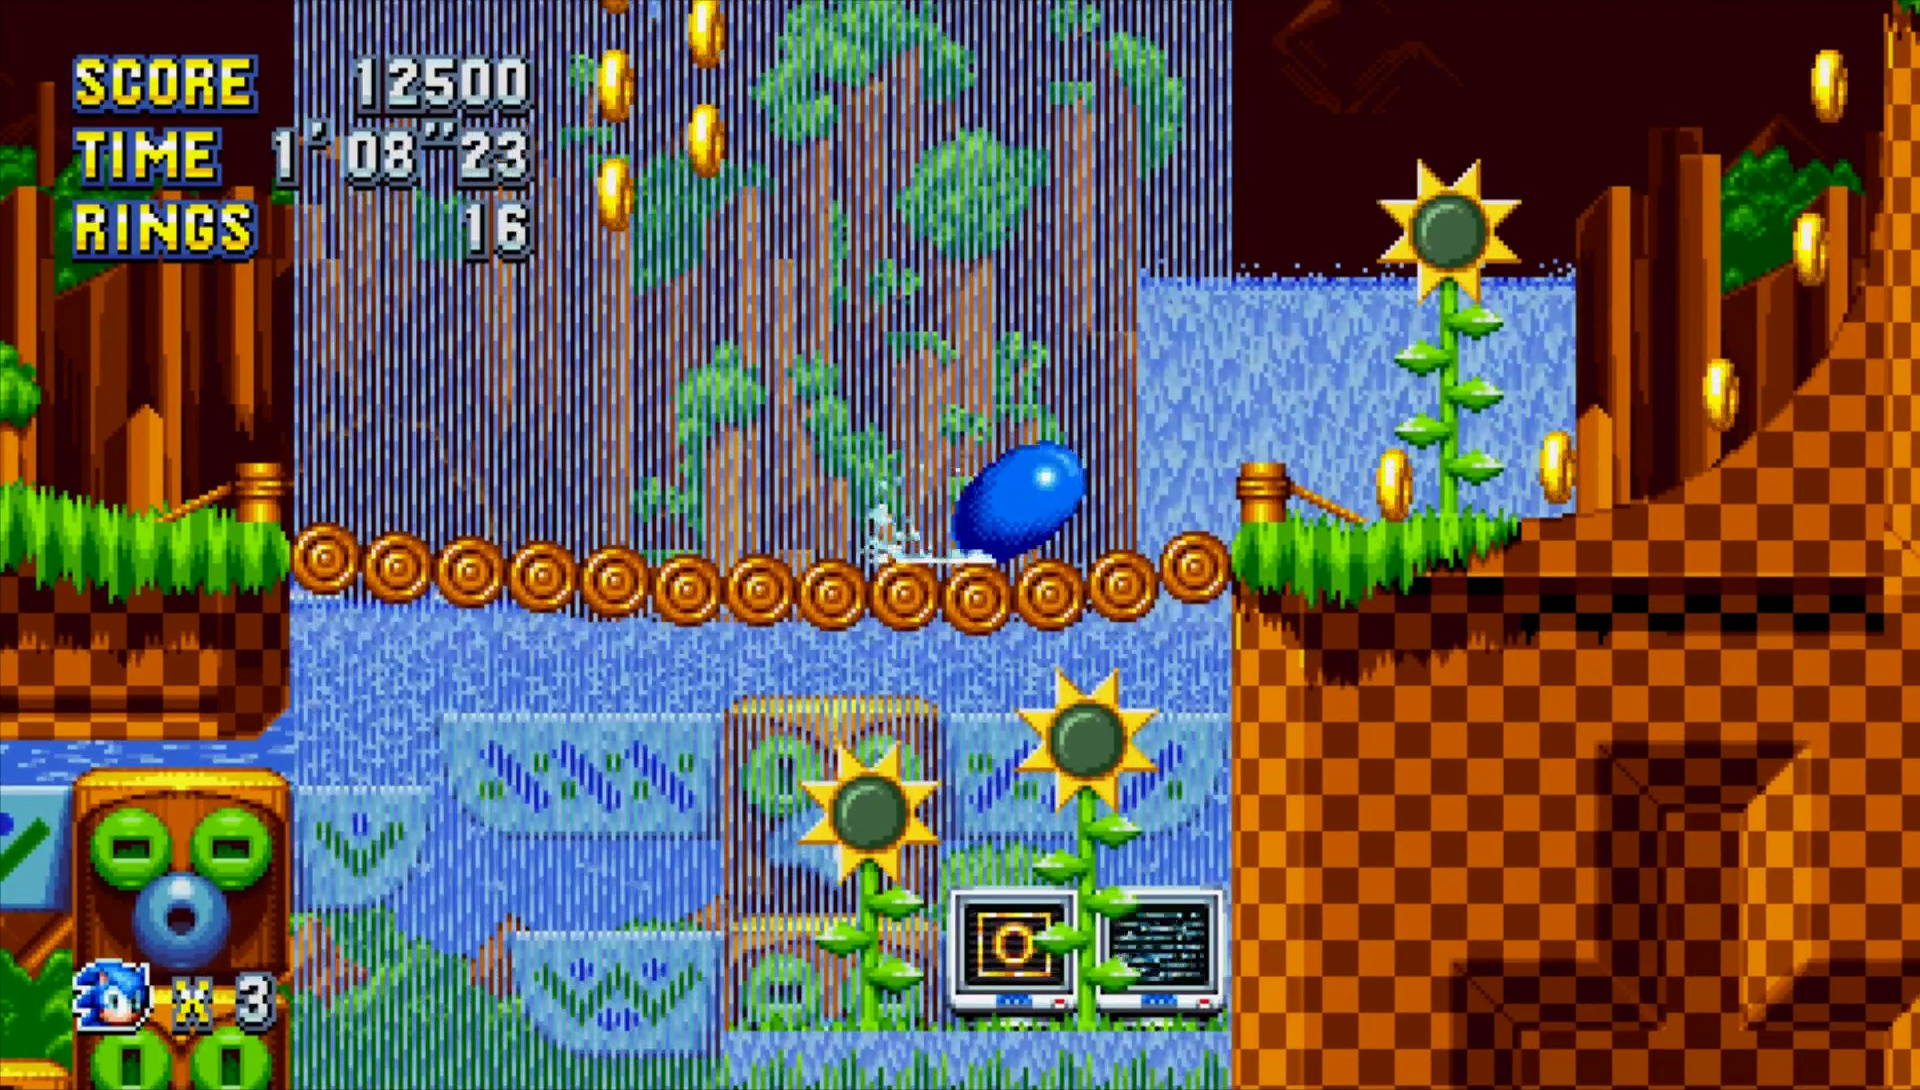 Sonic Mania Review - A Lesson From the Classics (PS4) - Rice